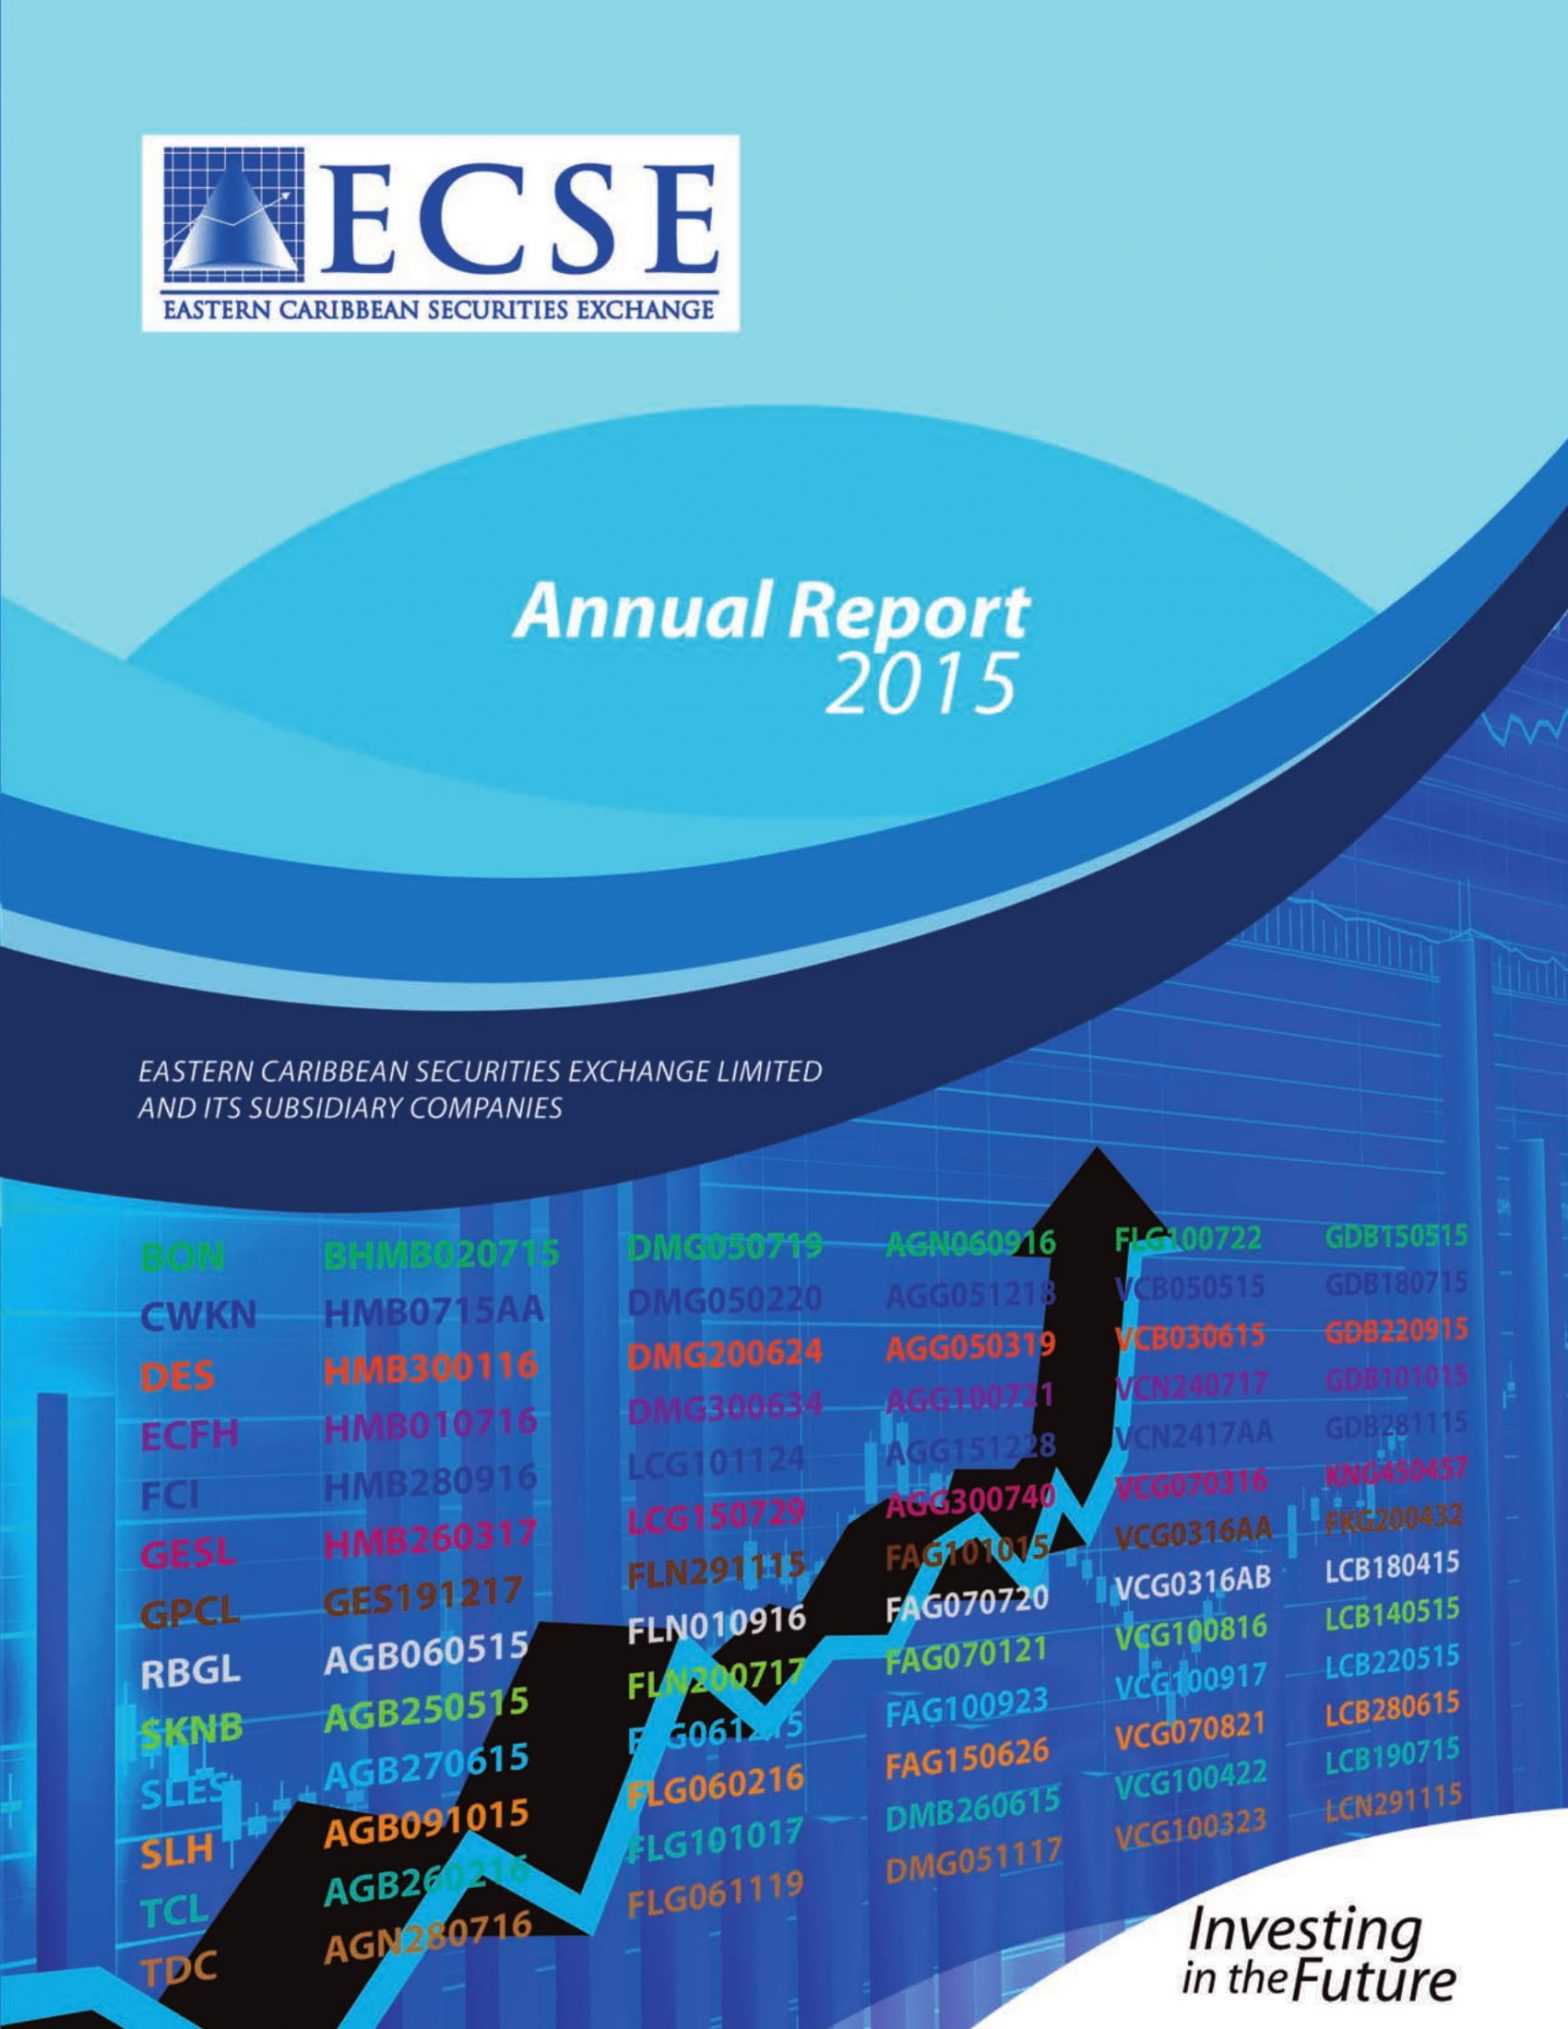 ECSE Annual Report 2015